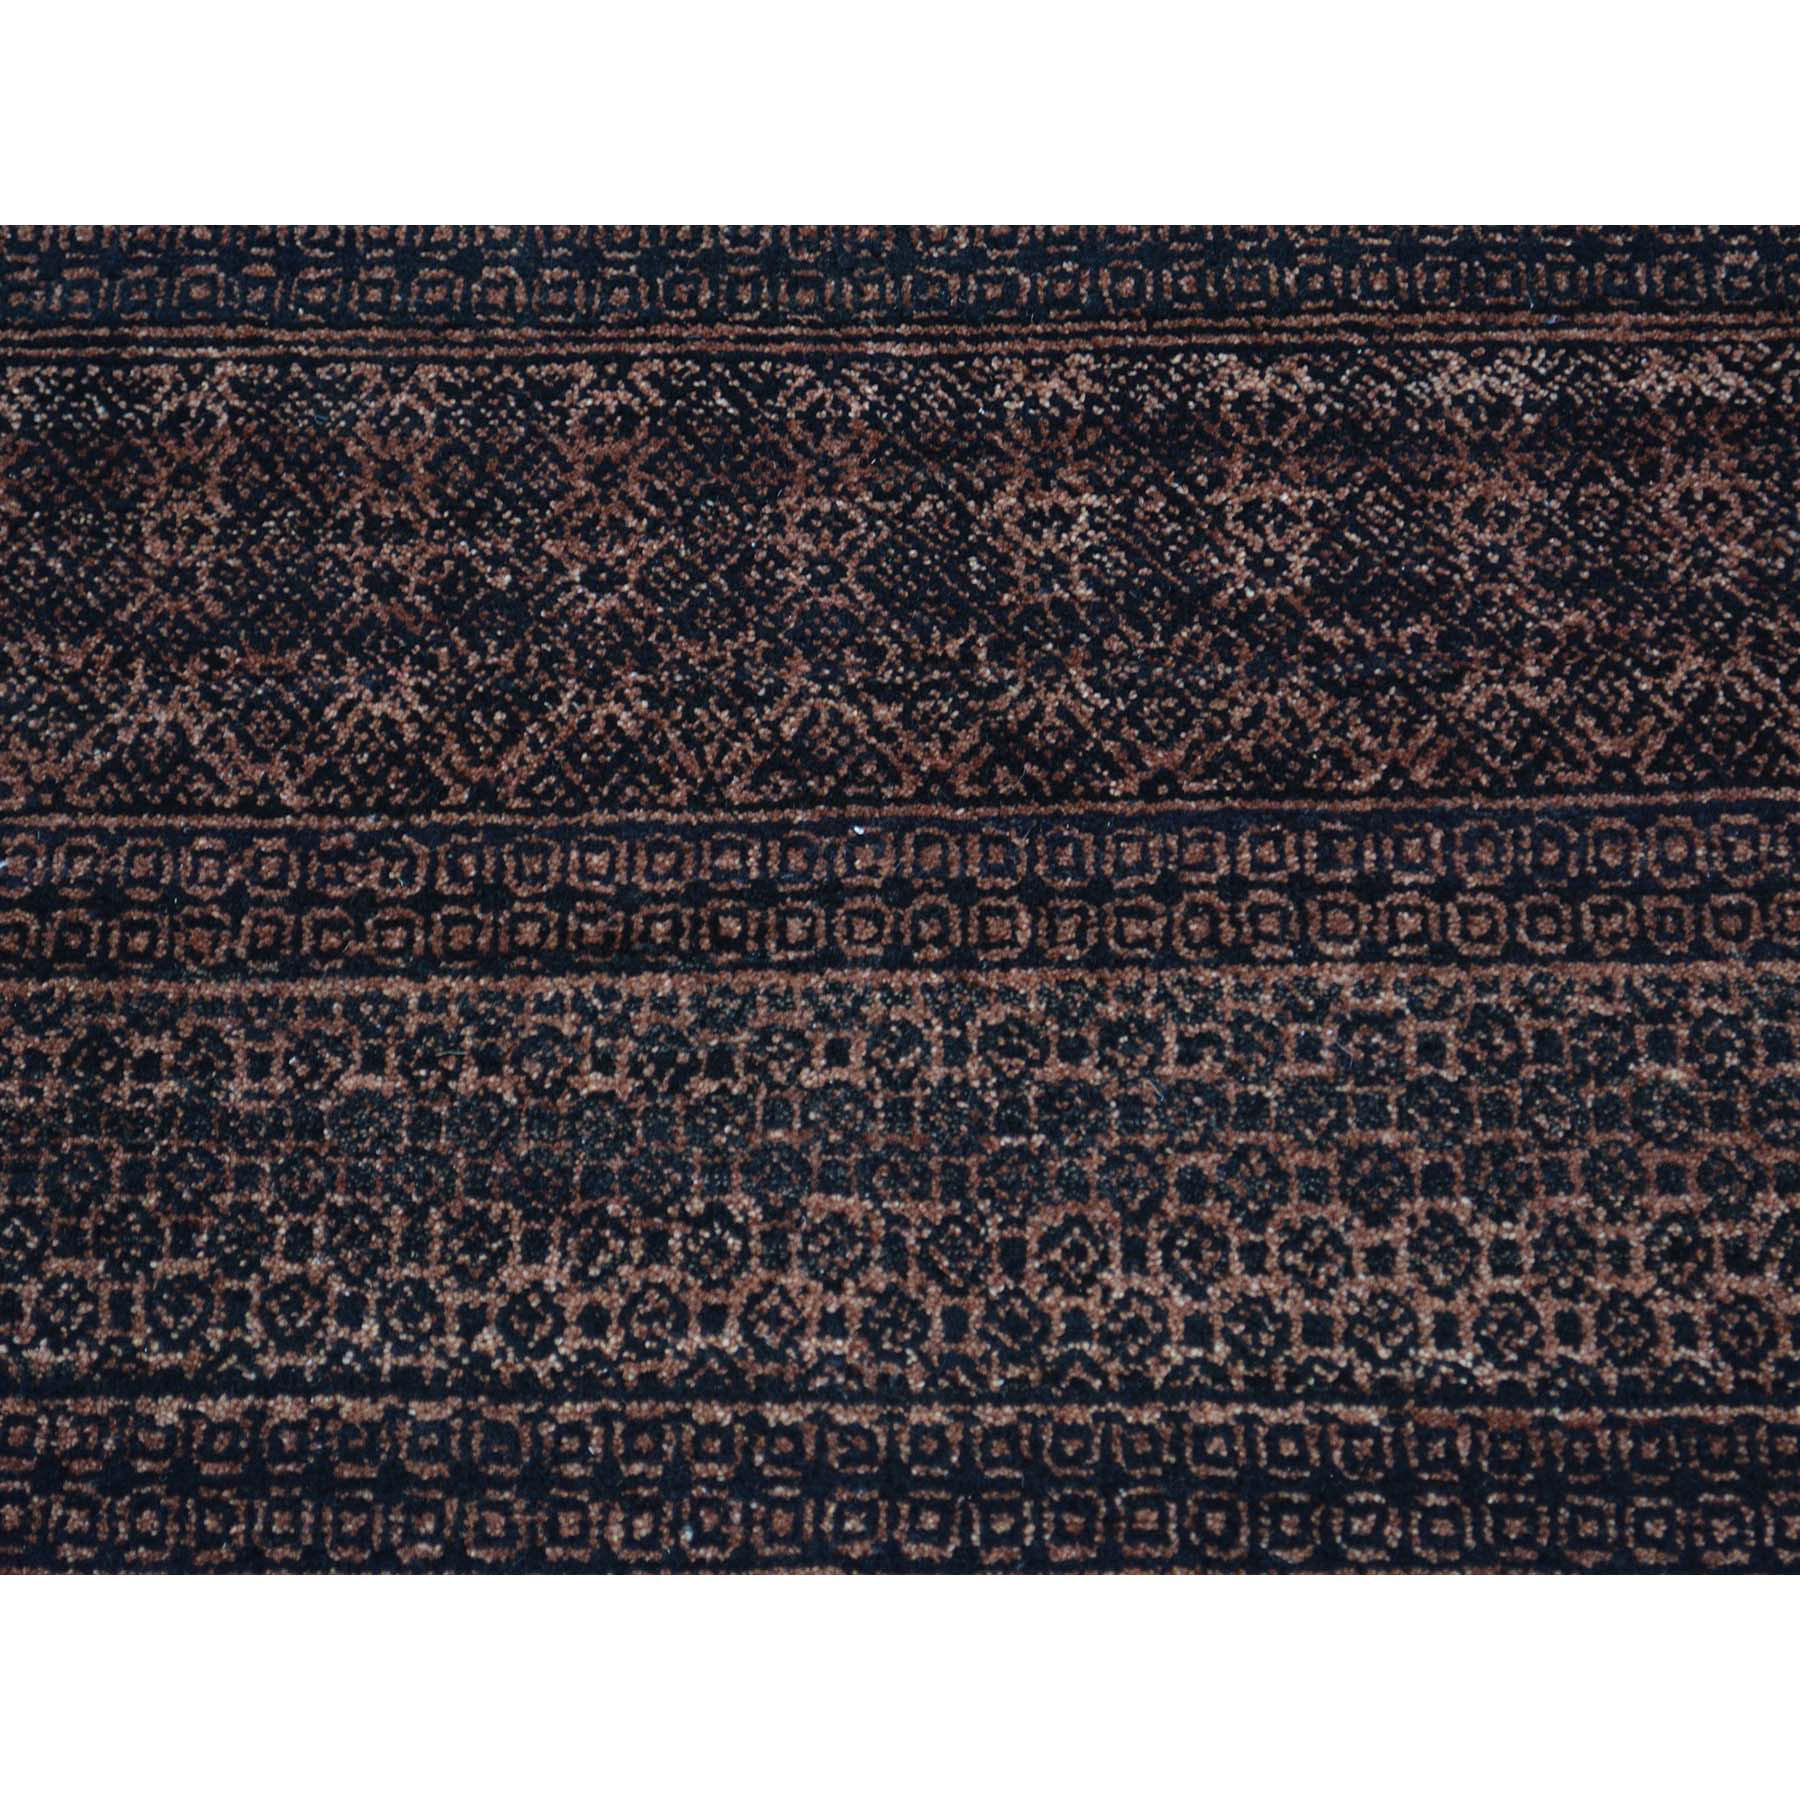 3-9 x6- Pure Wool Modern Gabbeh Tone on Tone Hand Knotted Oriental Rug